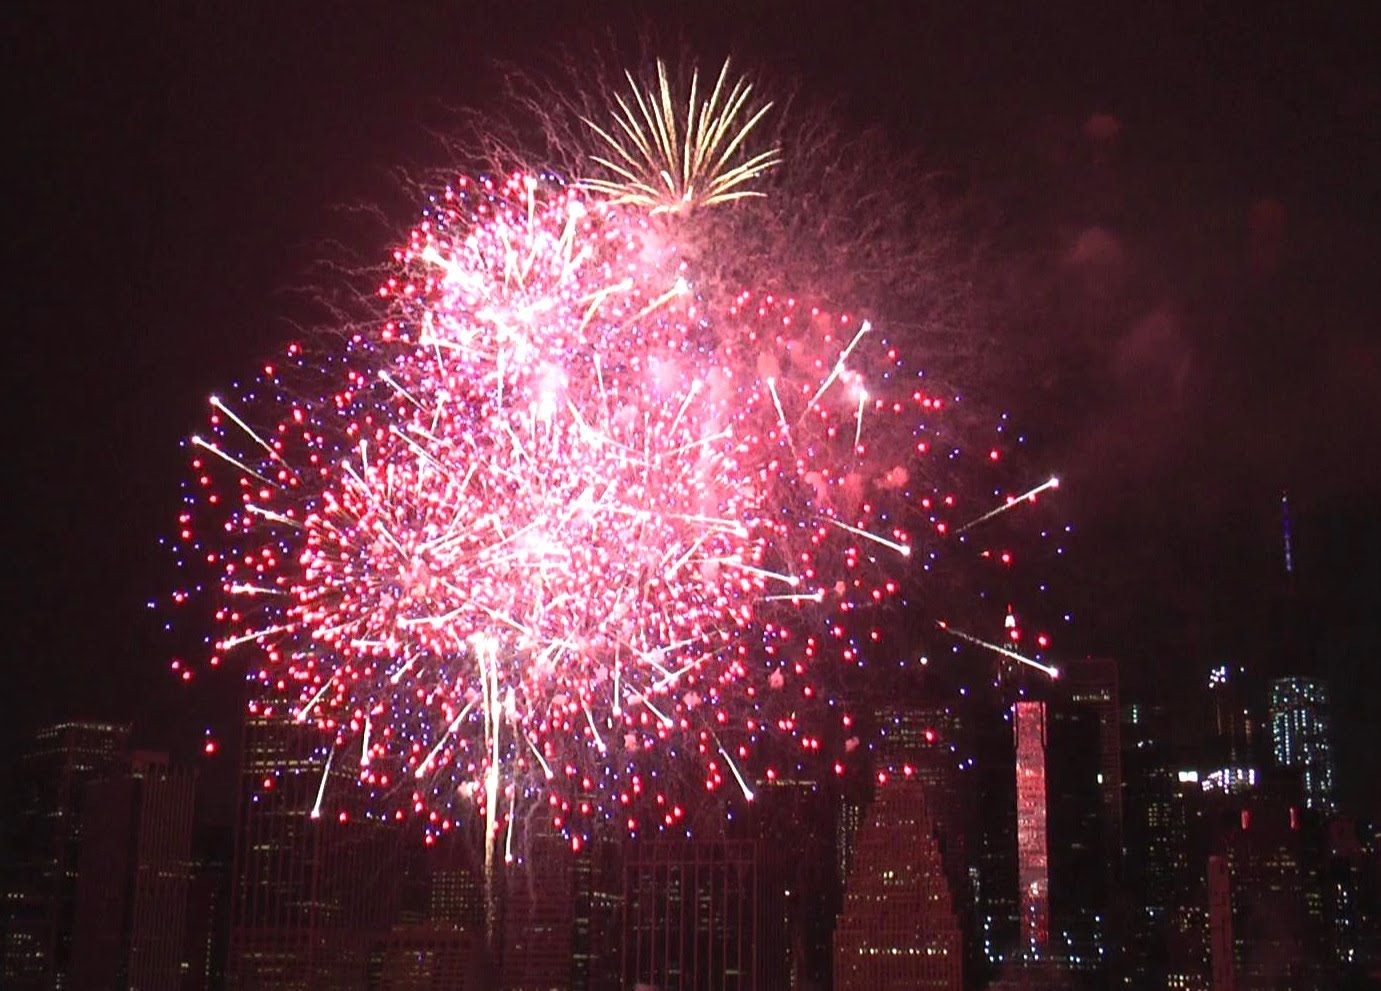 2016 NYC Macy's 4th of July Fireworks. Unedited Video